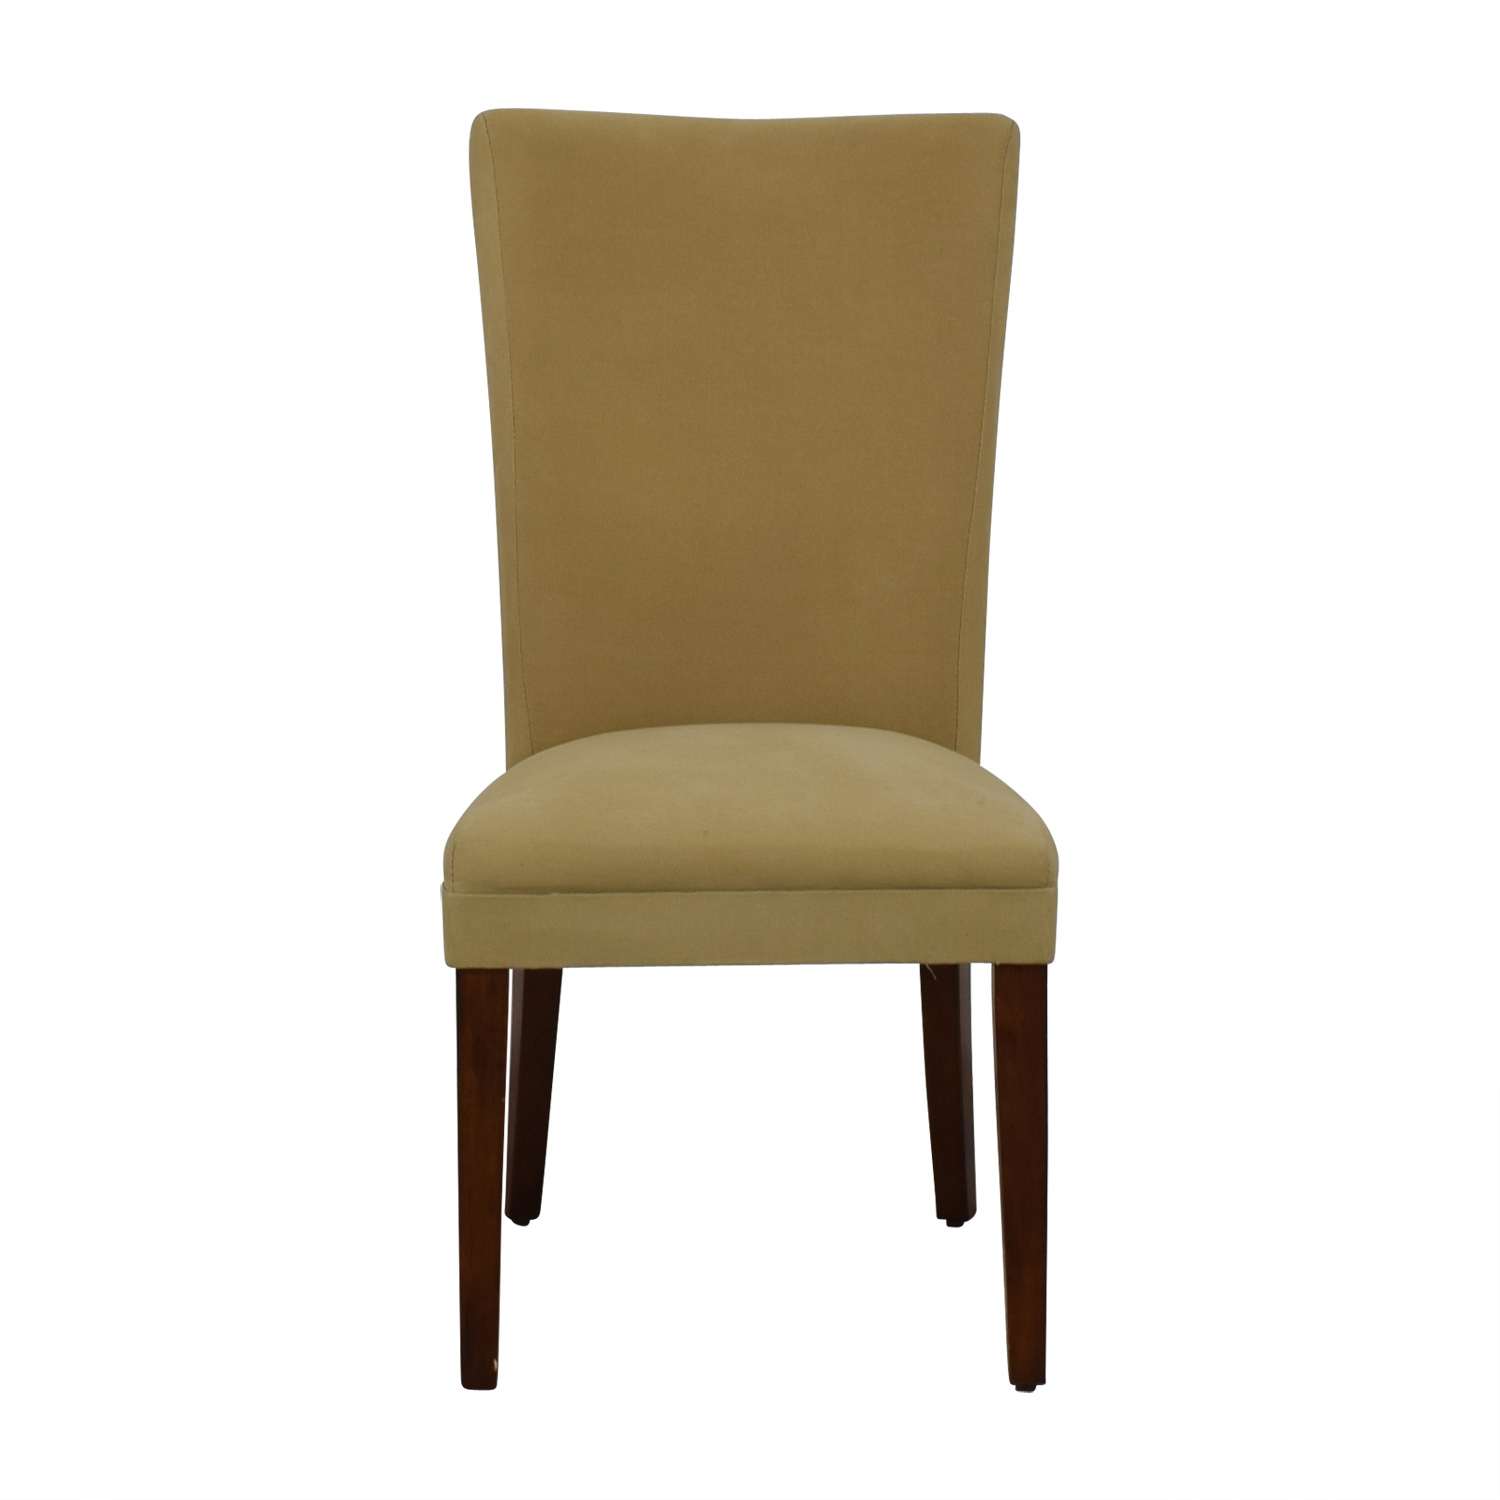 Coaster Coaster High Back Tan Upholstered Chair price